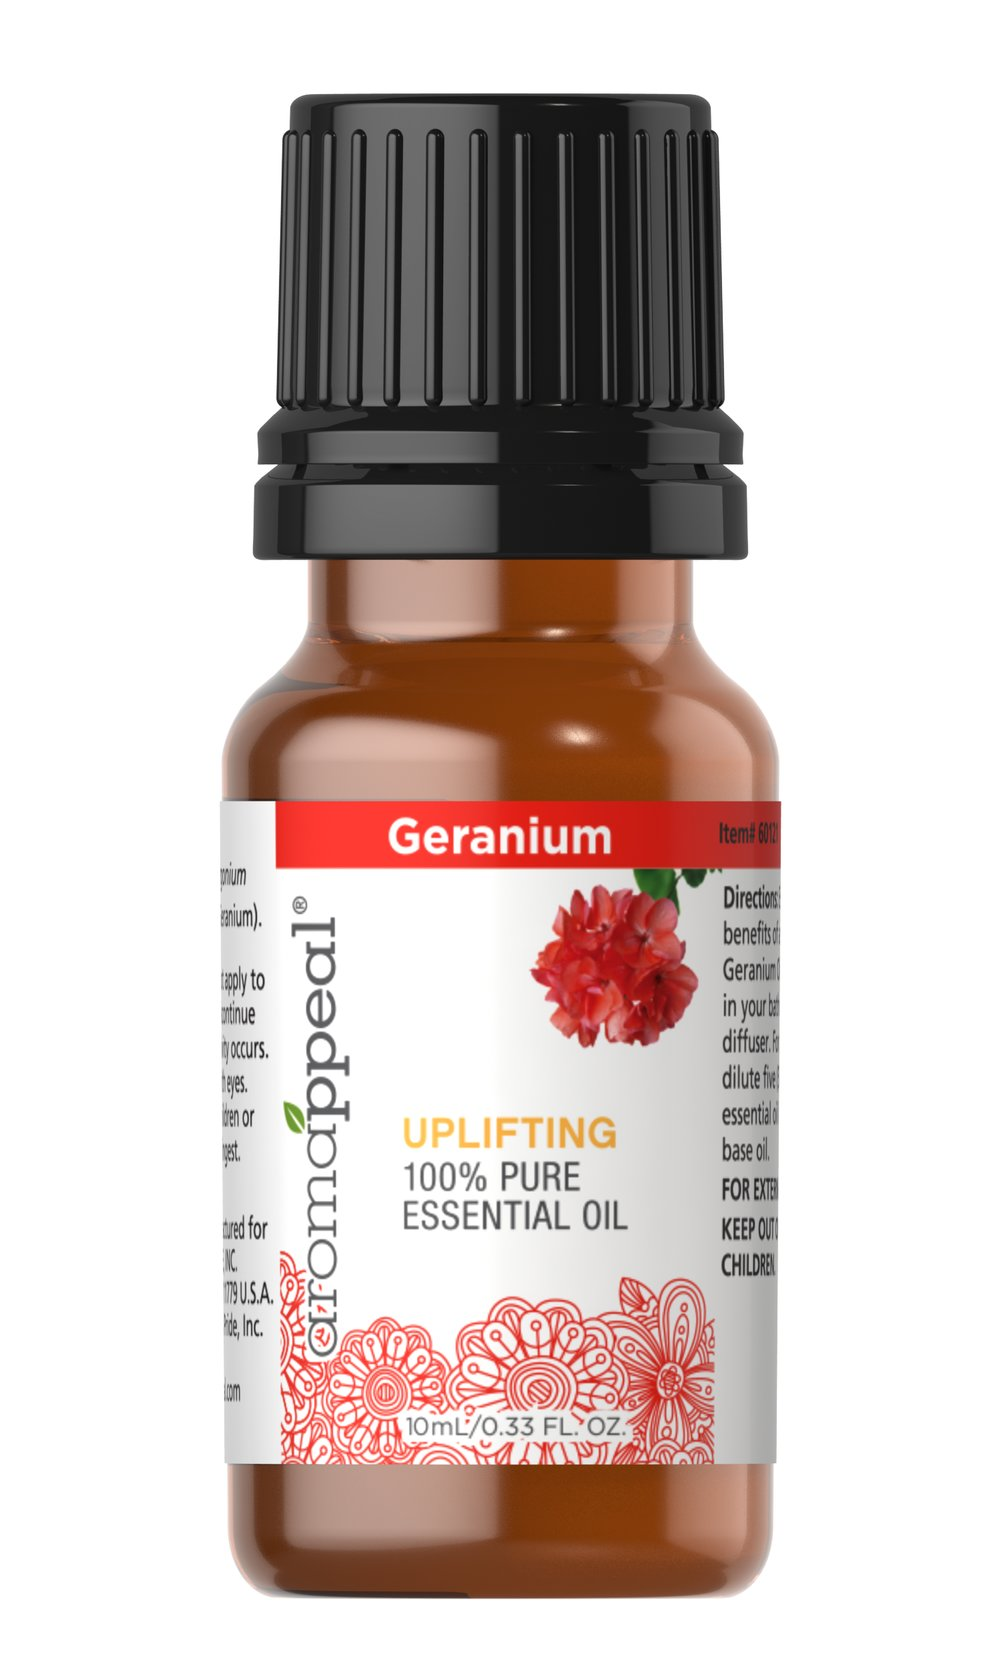 "Geranium 100% Pure Essential Oil <p>Indulge in aromatic paradise with the strong yet sweet essence of Geranium. Geranium has an uplifting scent that will invigorate your senses. <br /></p><ul><li><span class=""bold-pink"">Traditional Uses:</span> Cleansing, purifying,  and uplifting.  </li><li><span class=""bold-pink"">Botanical Name:</span>  Pelargonium graveolens  </li><li><span class=&quo"